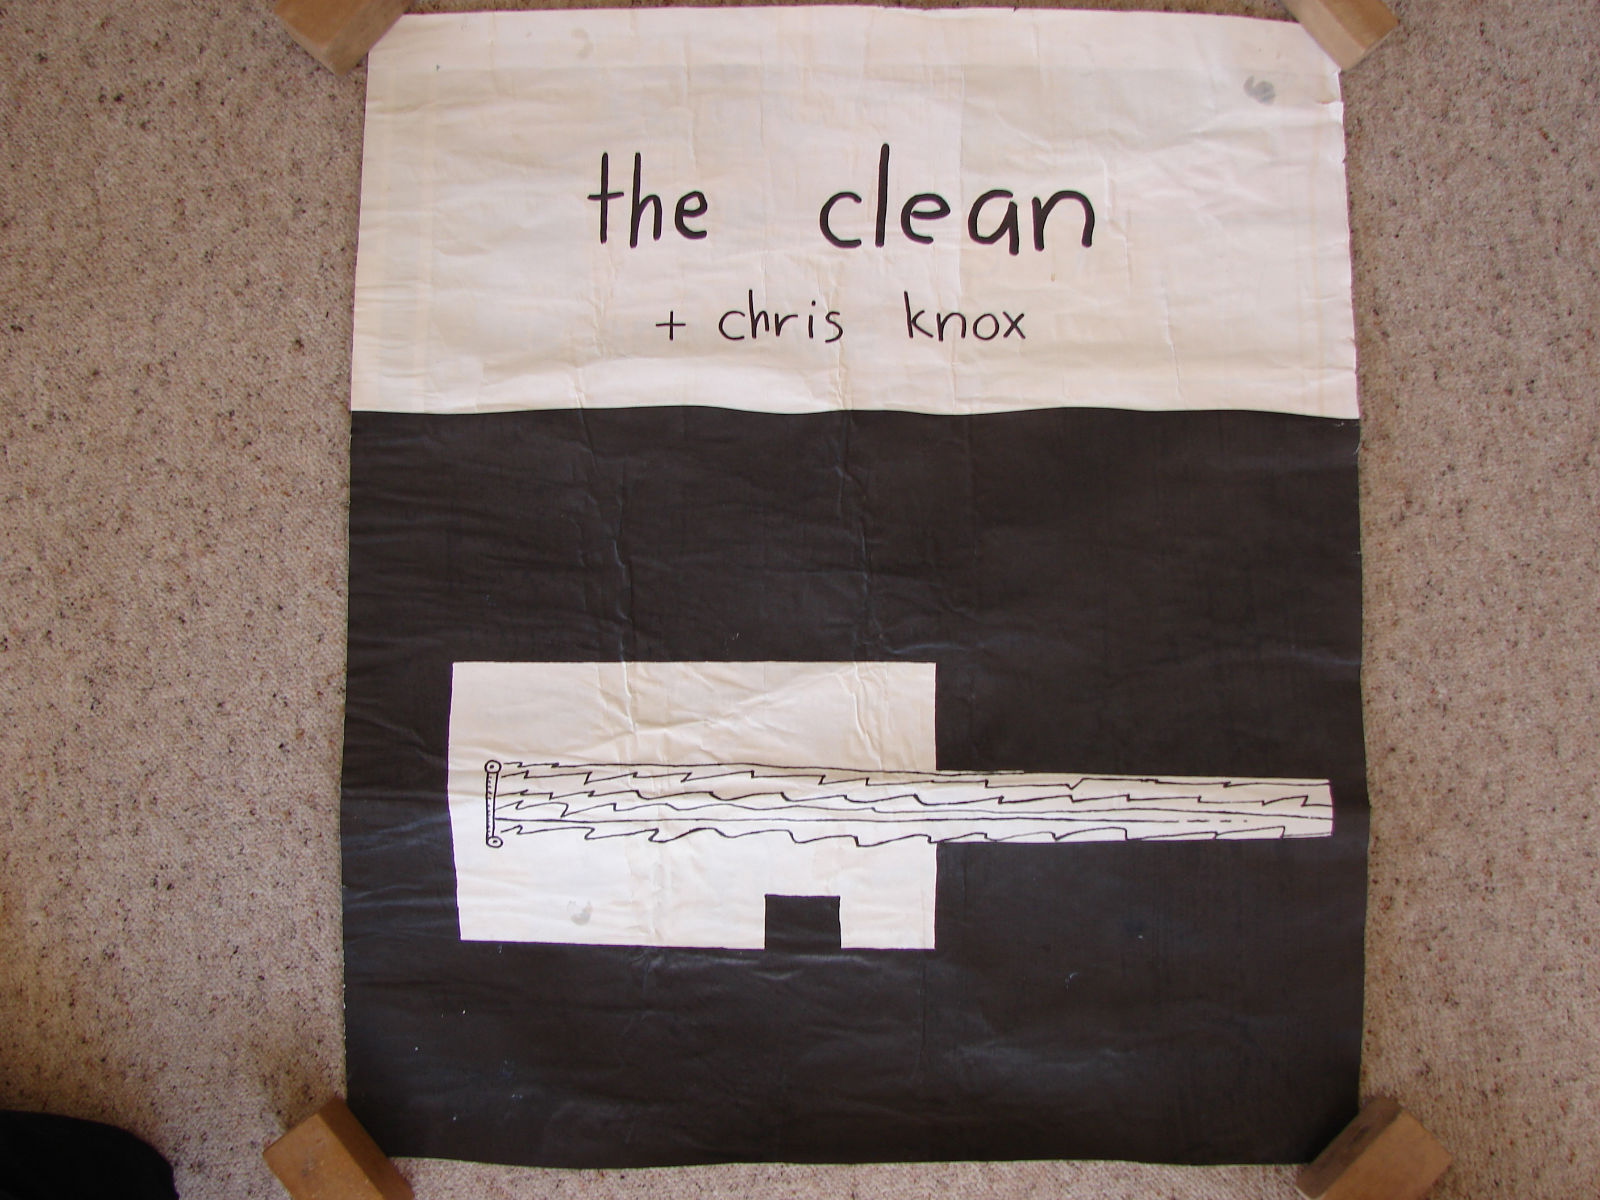 The Clean and Chris Knox